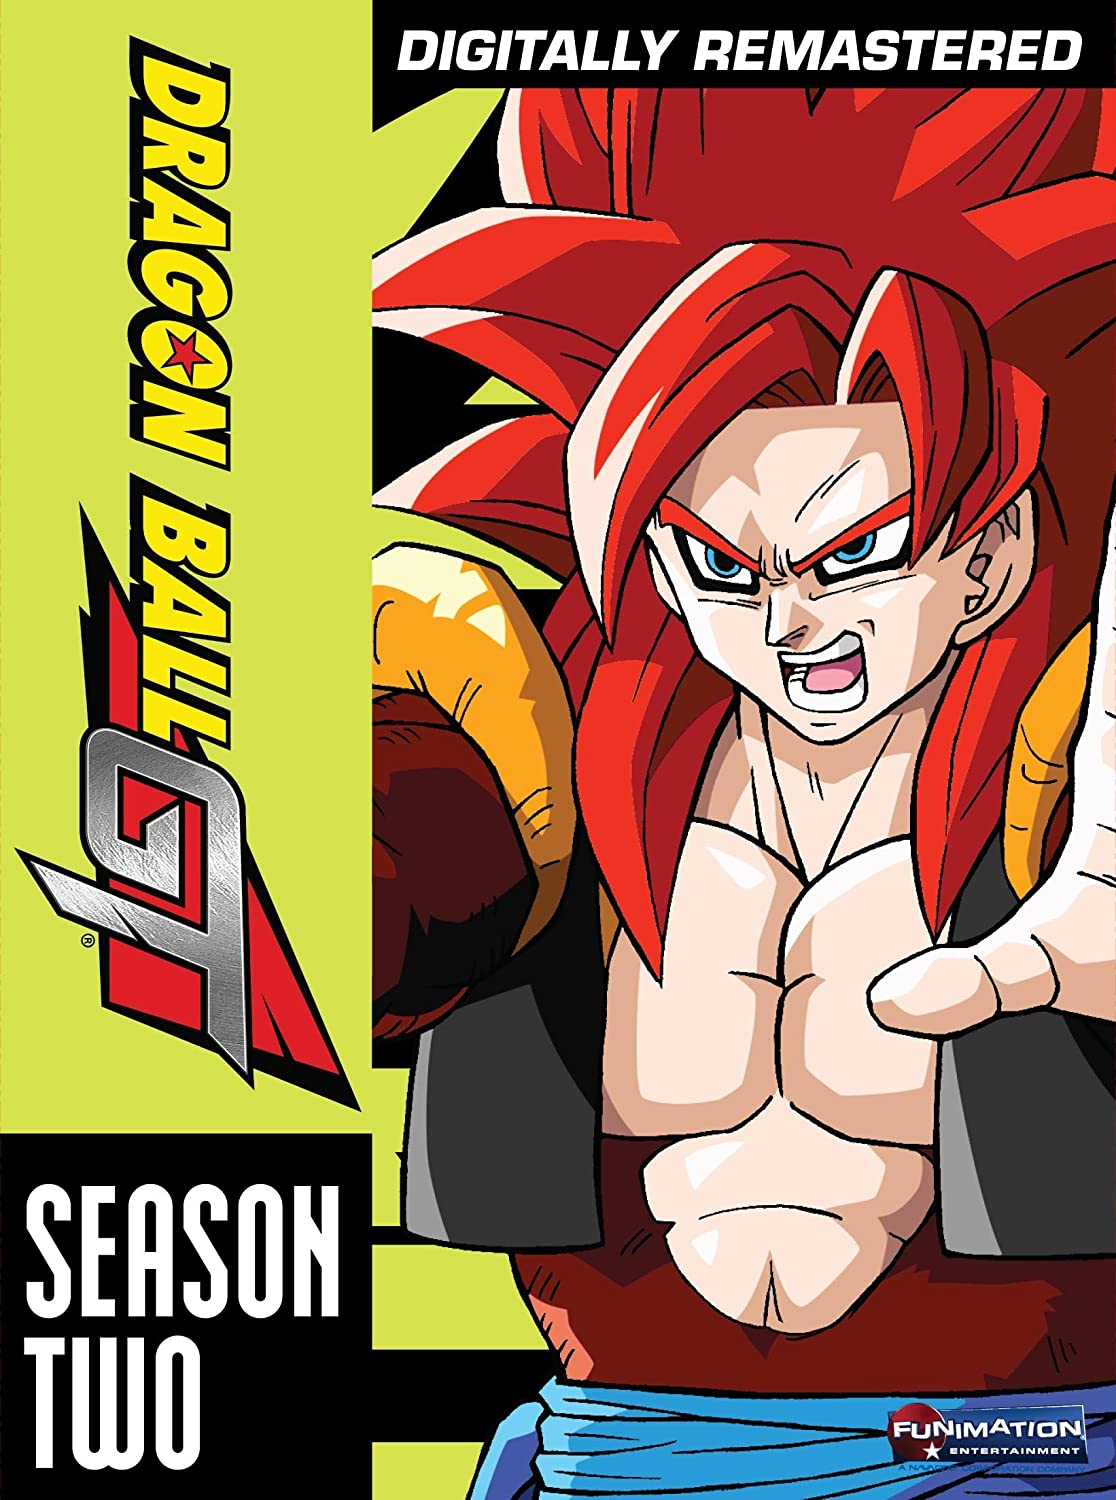 Dragon Ball GT: Season 2 (ep.35-64 and movie) Not Available Funimation! Unidisc 5069121 Anime / Japanimation